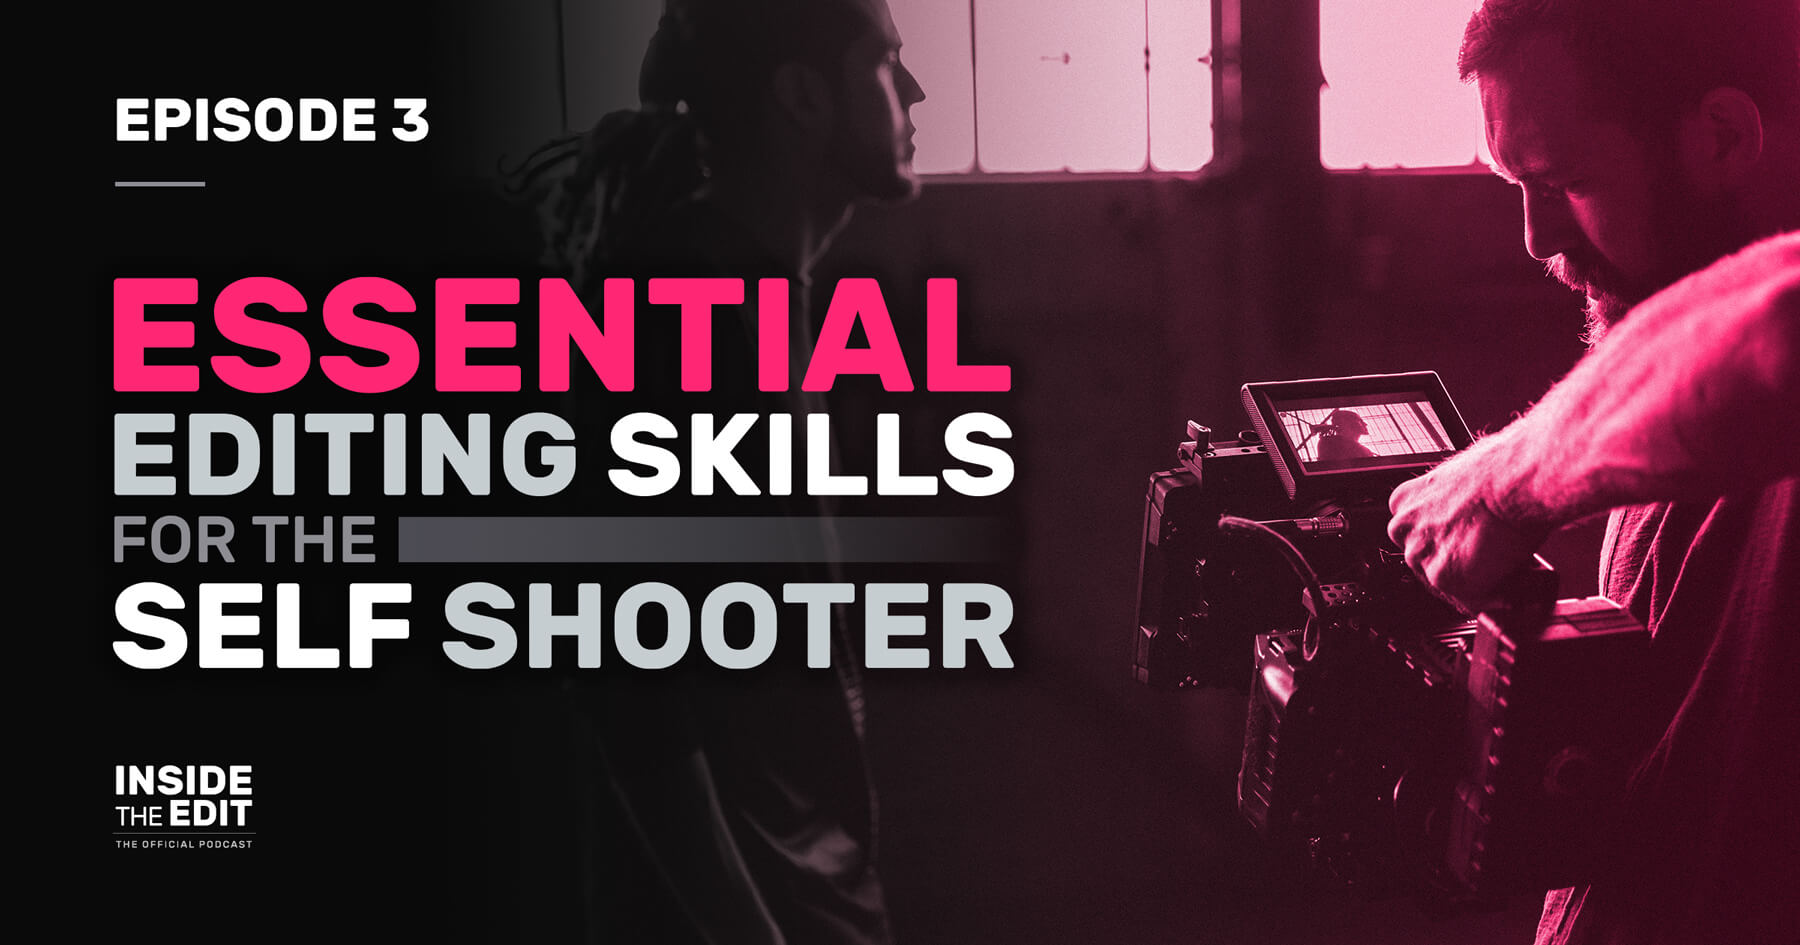 Essential Editing Skills for the Self Shooter